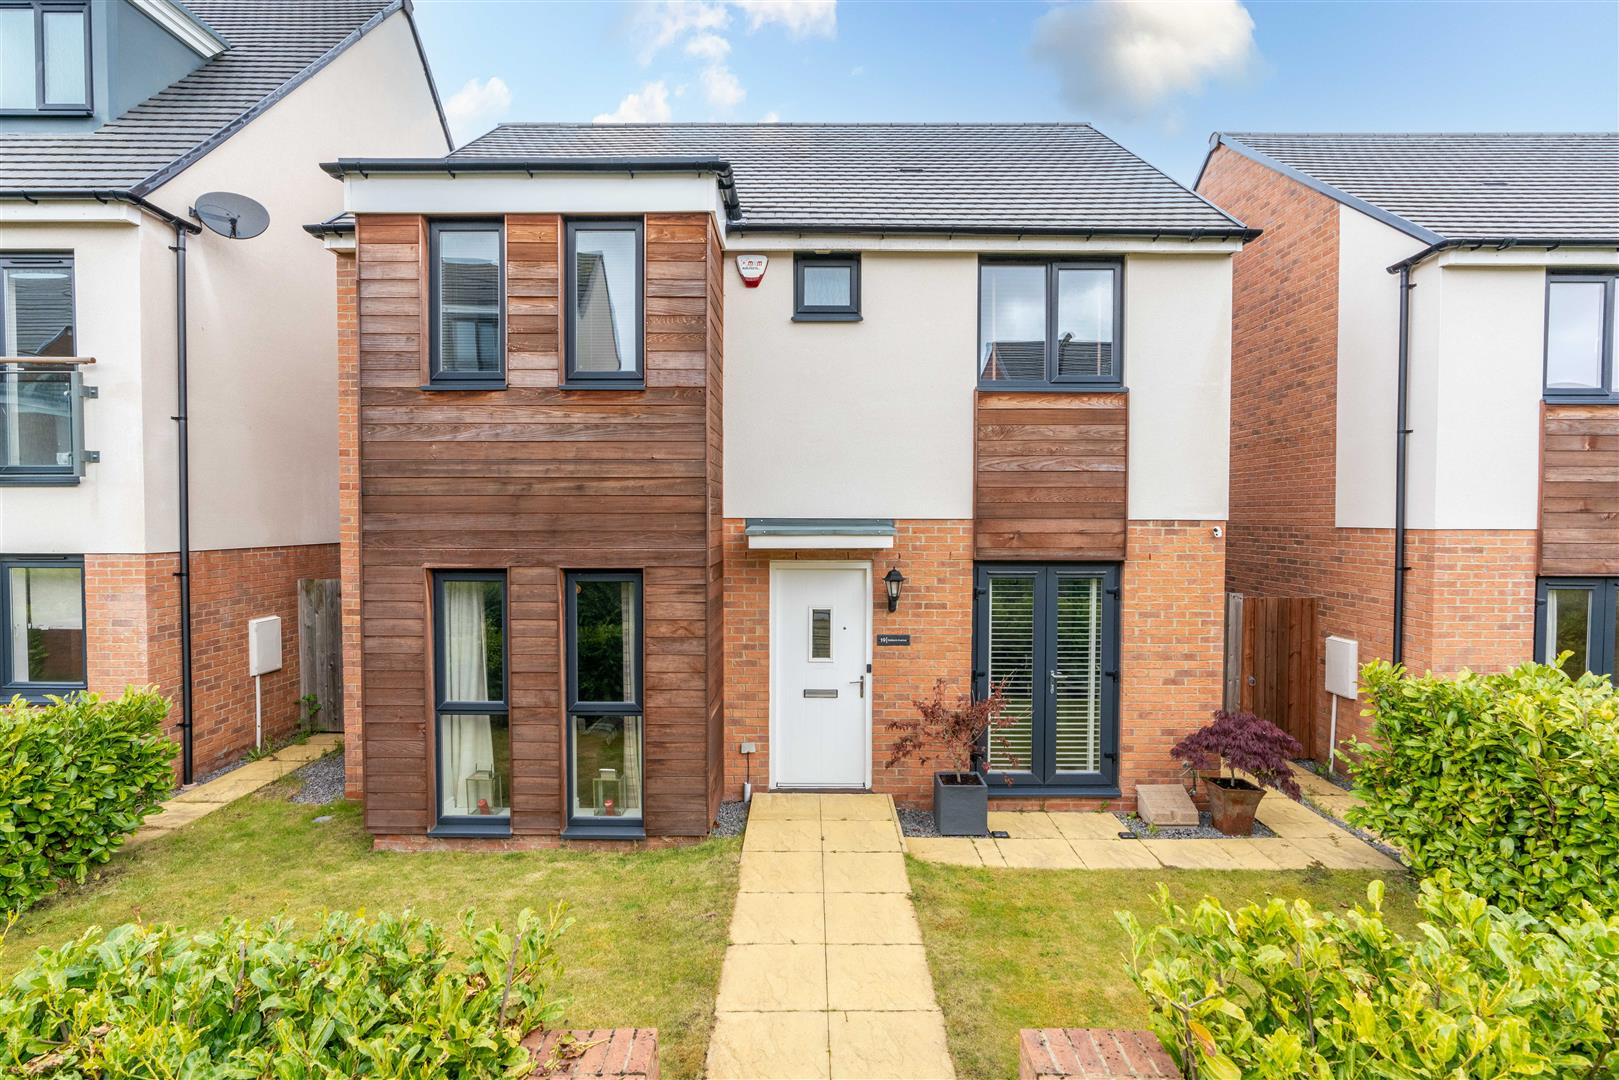 4 bed detached house for sale in Saltwick Avenue, Great Park, NE13